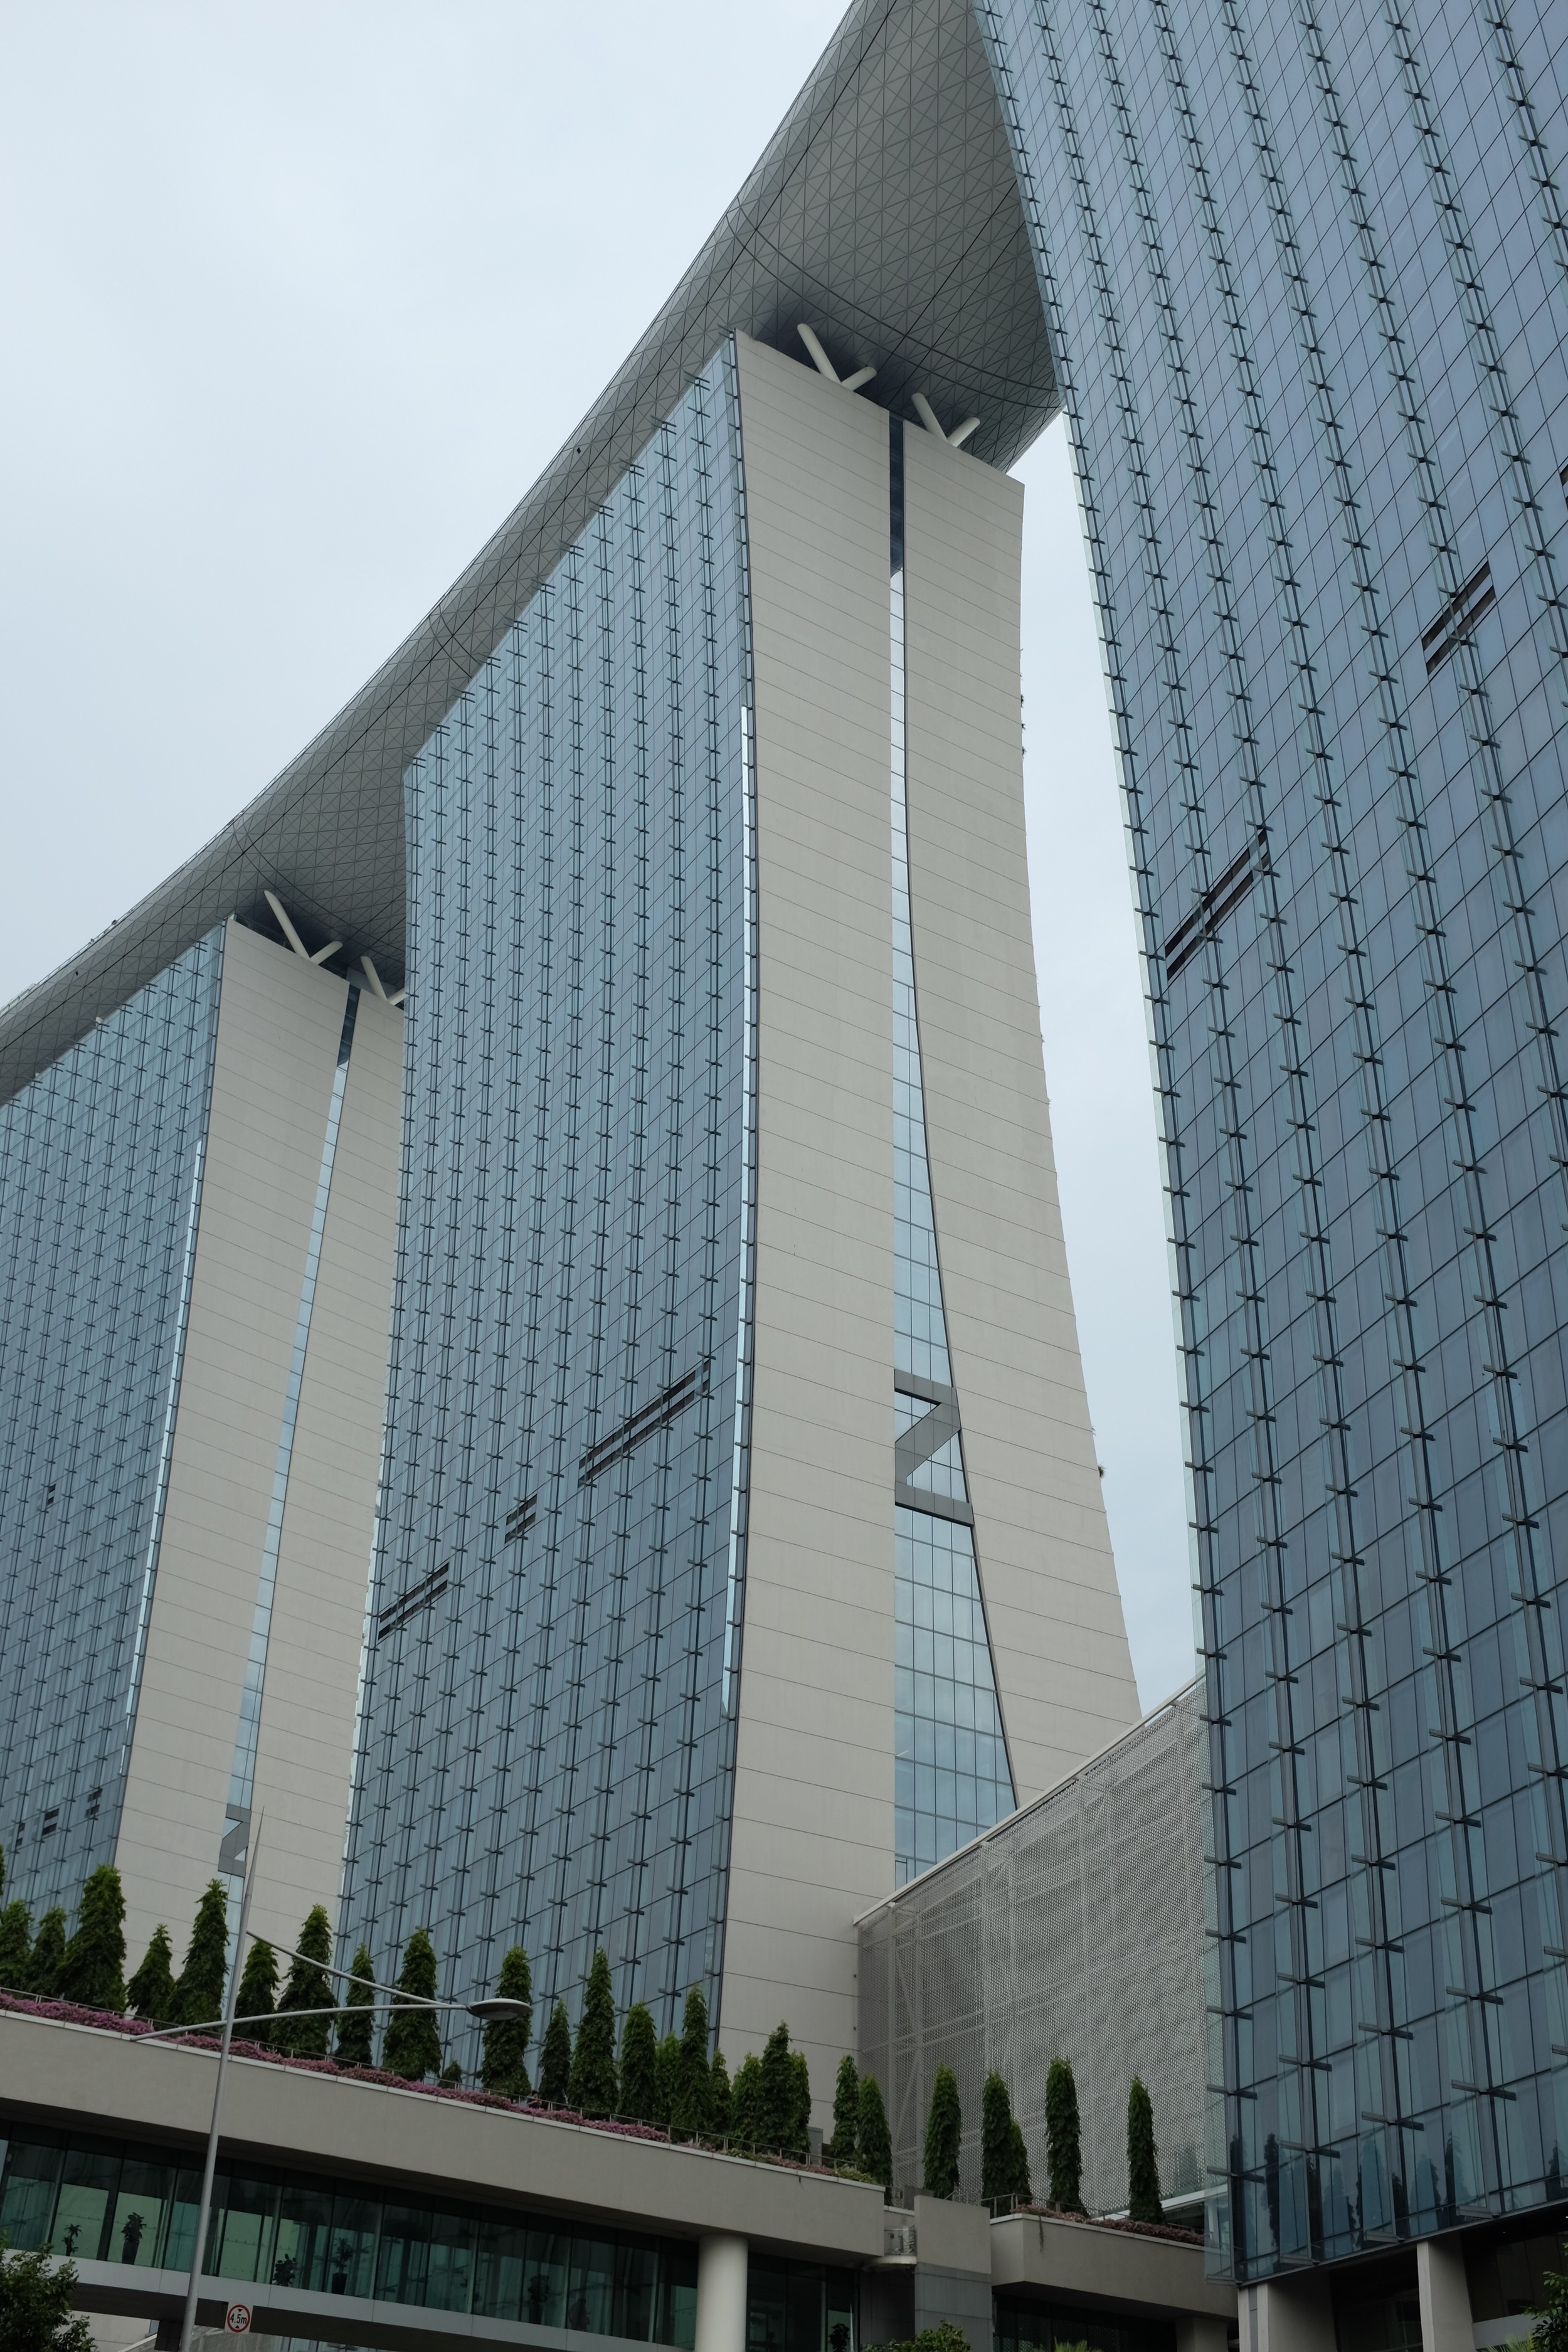 The three hotel towers